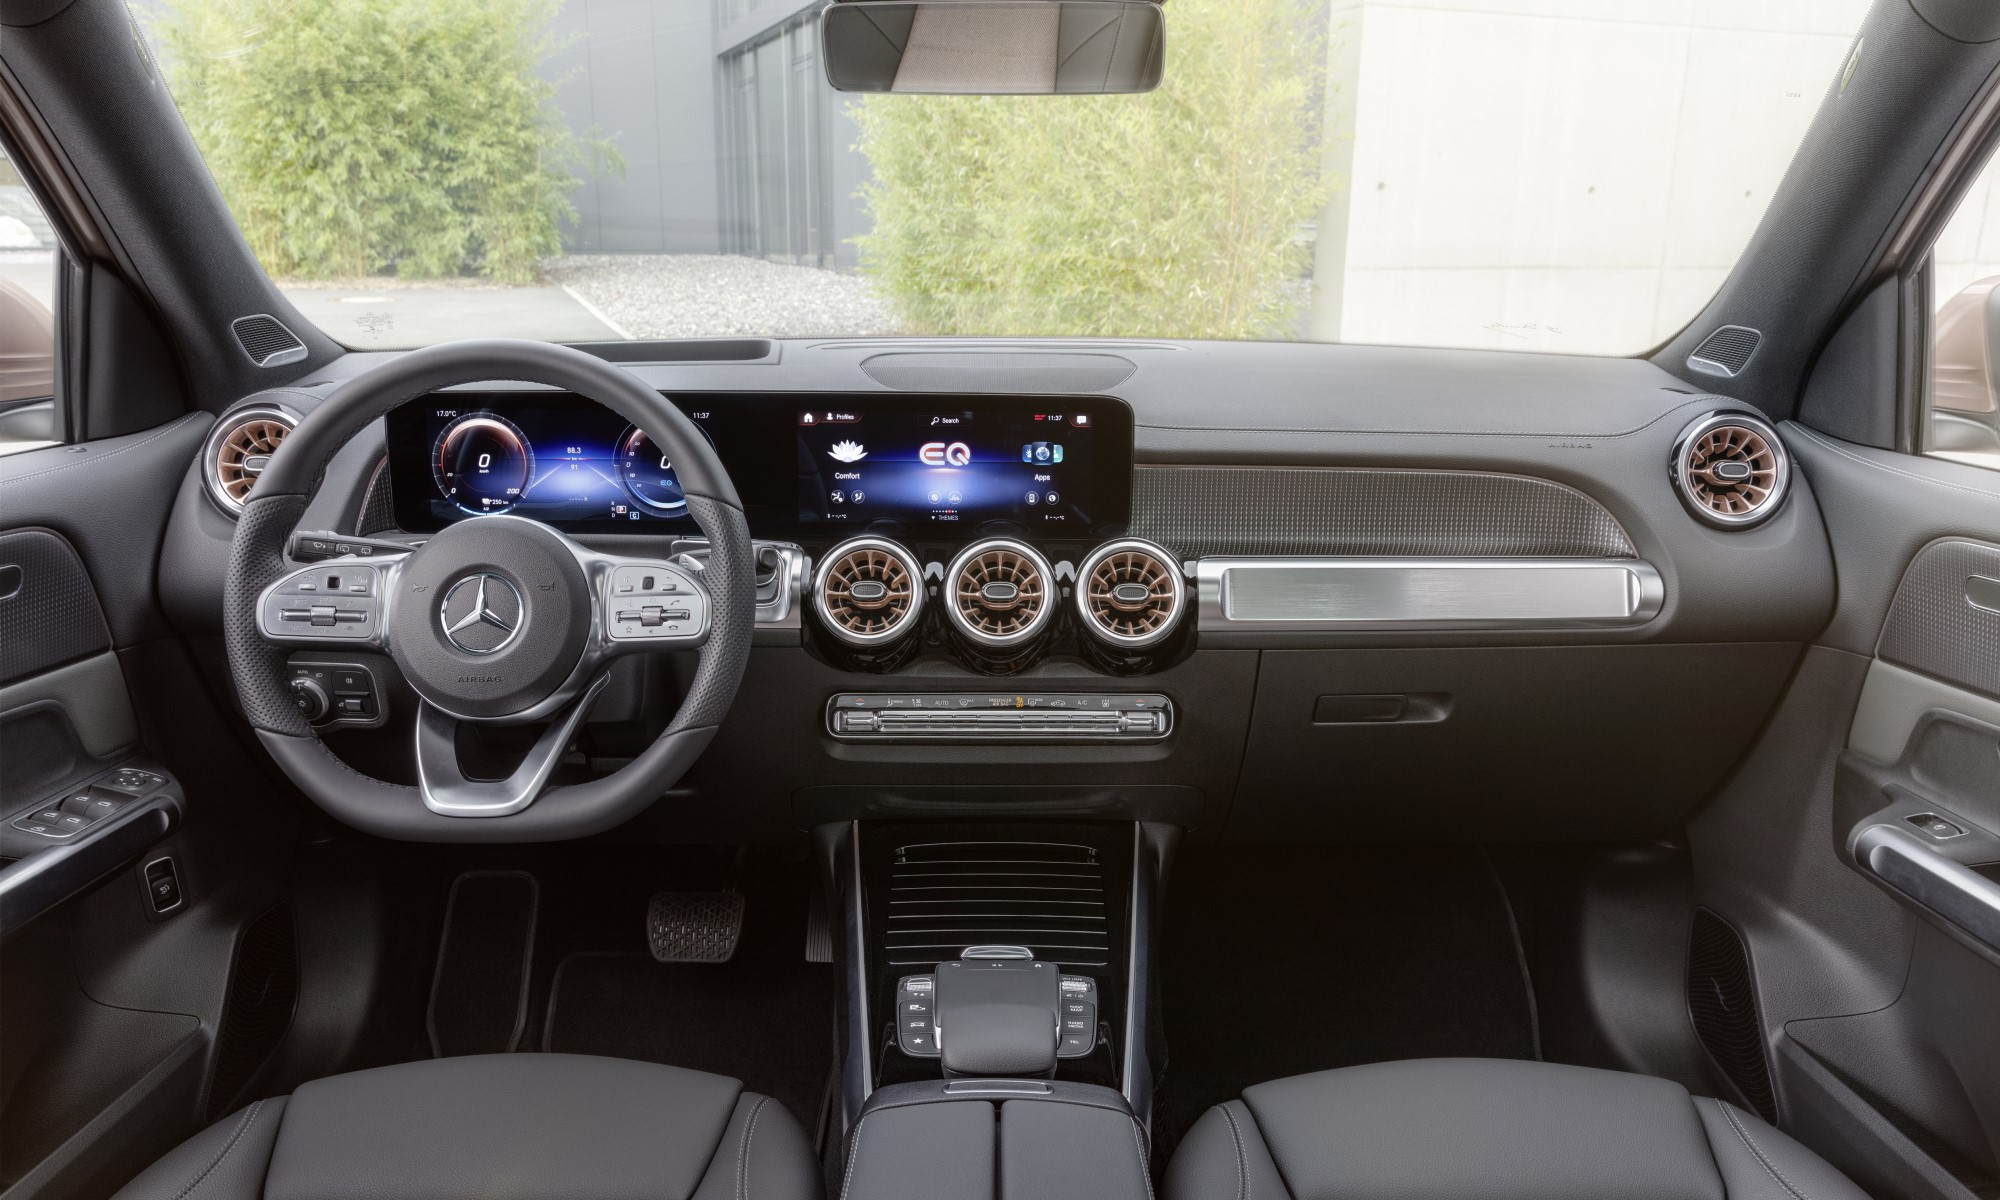 Mercedes-Benz EQB SUV interior